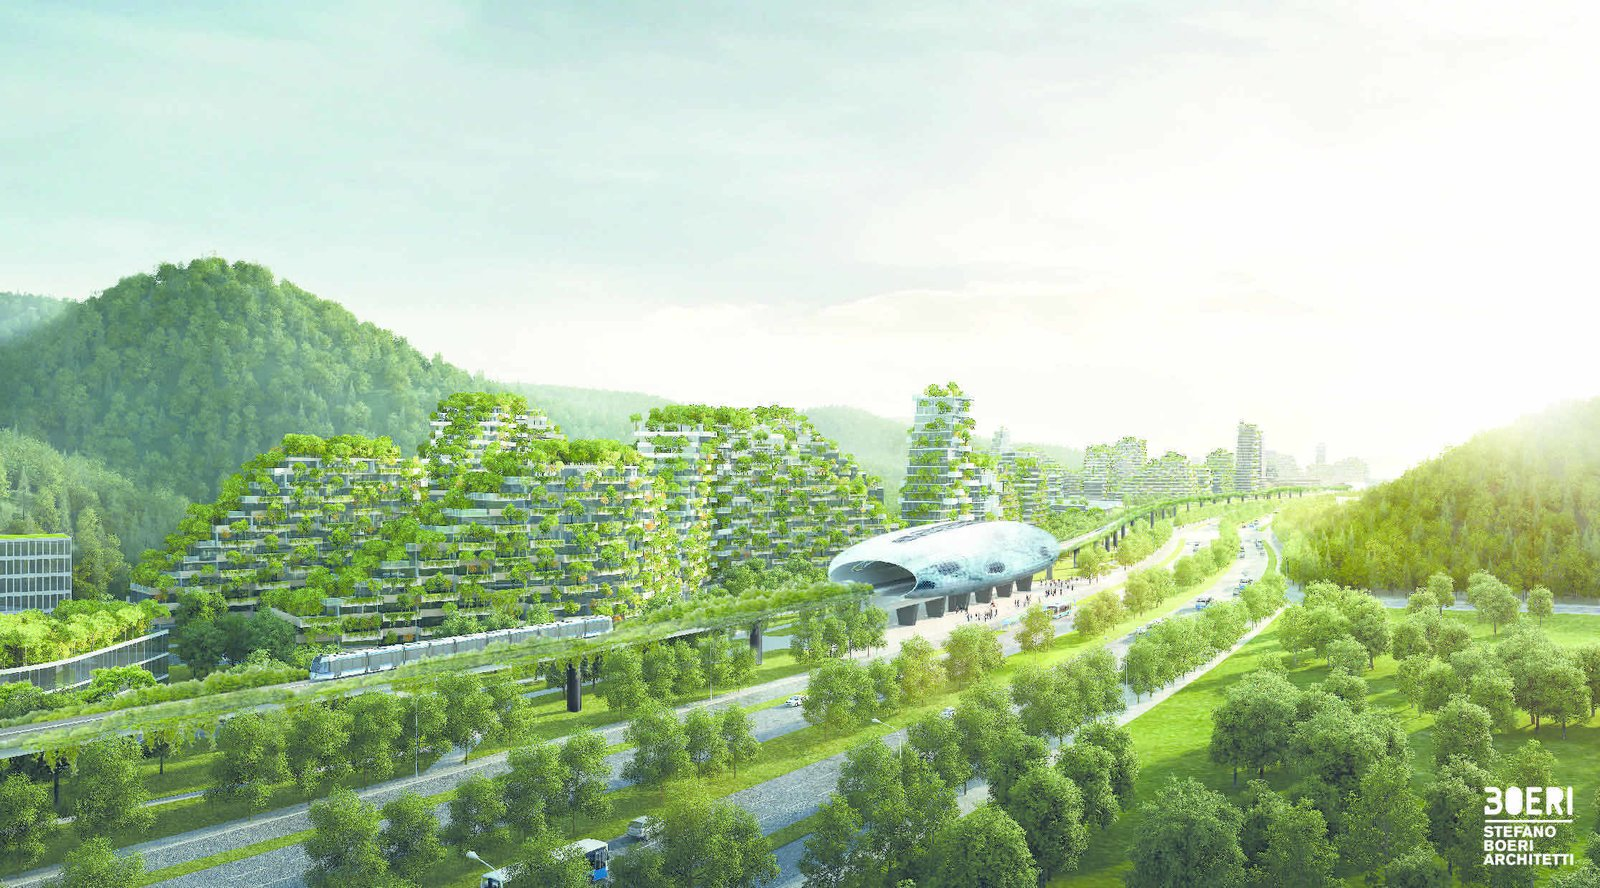 Photo 4 of 6 in A Green City in China That Will Play a Major Role in Fighting Air Pollution